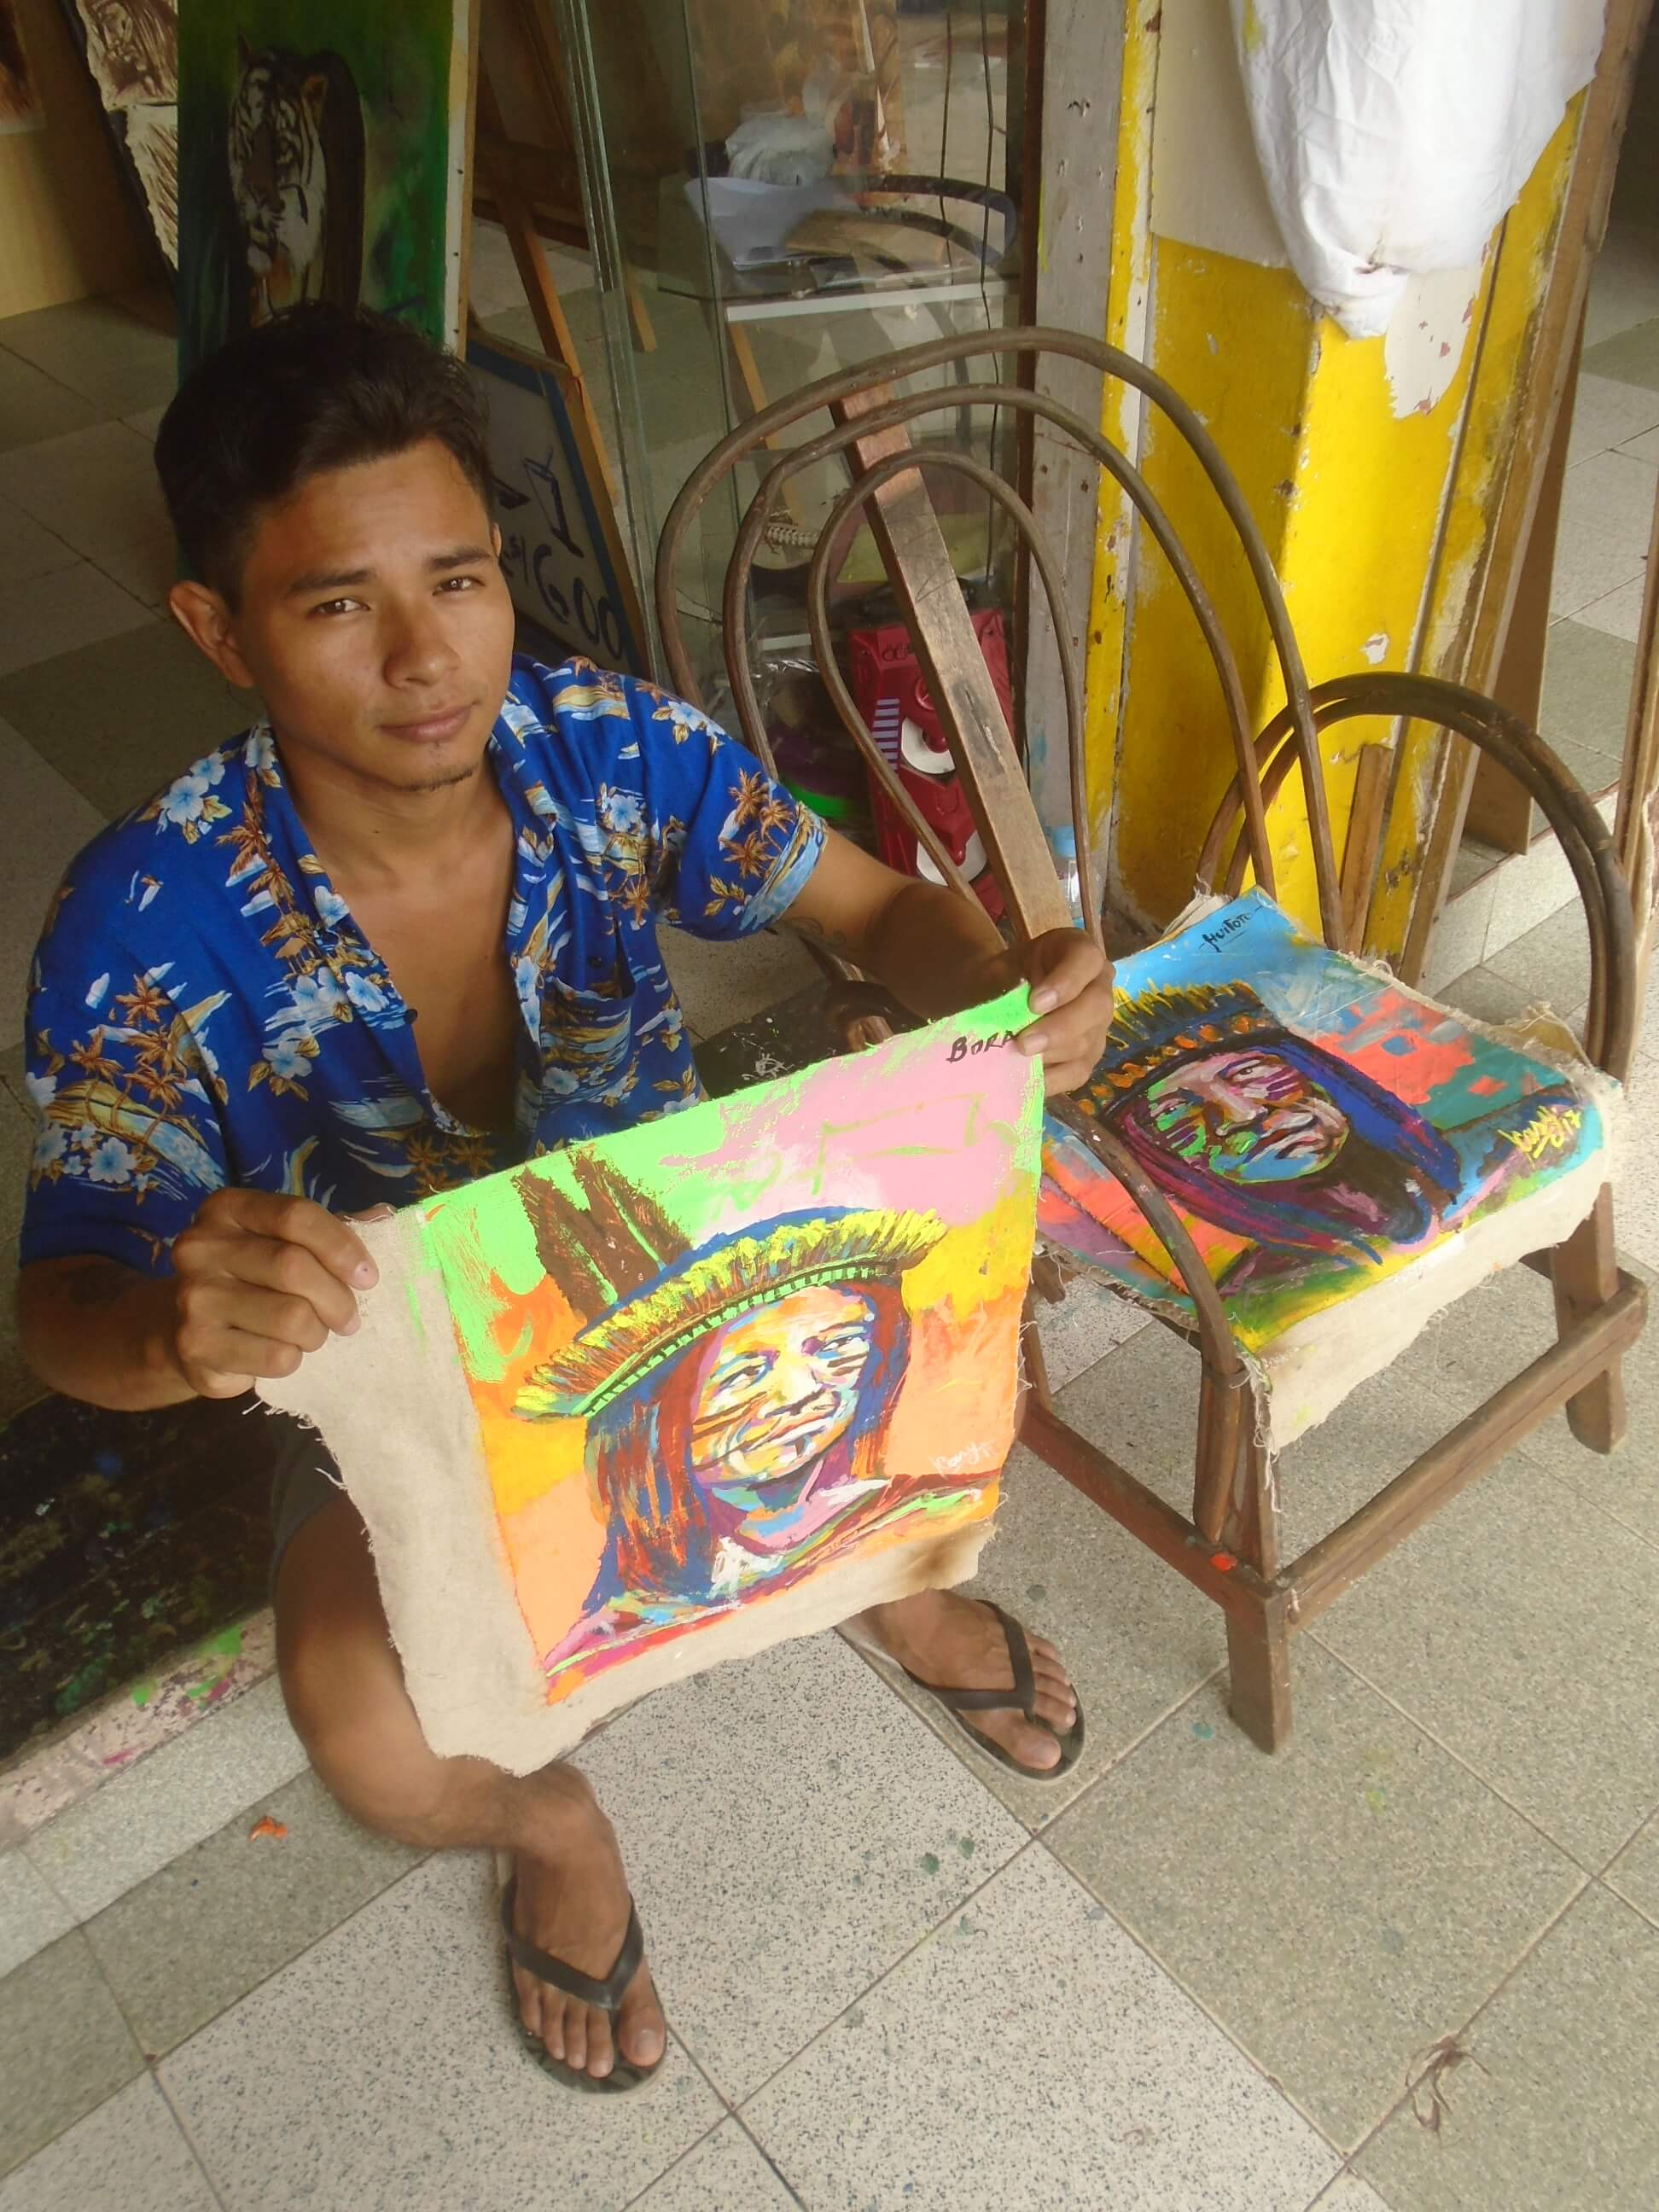 Artista local de Iquitos, Perú con una de sus obras pop art.